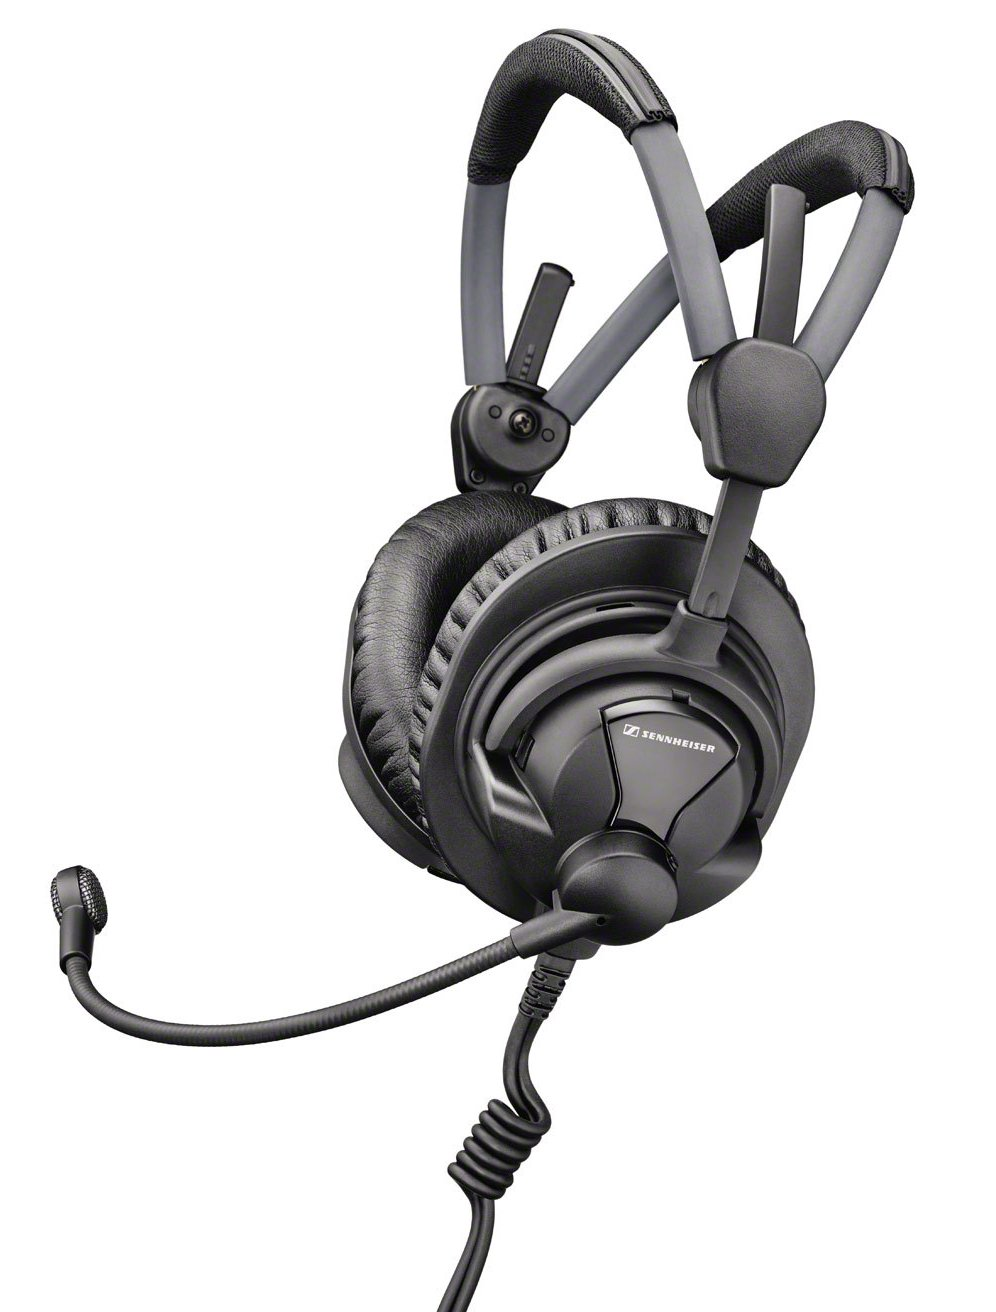 Broadcast Headset with Pre-Polarized Condenser Microphone